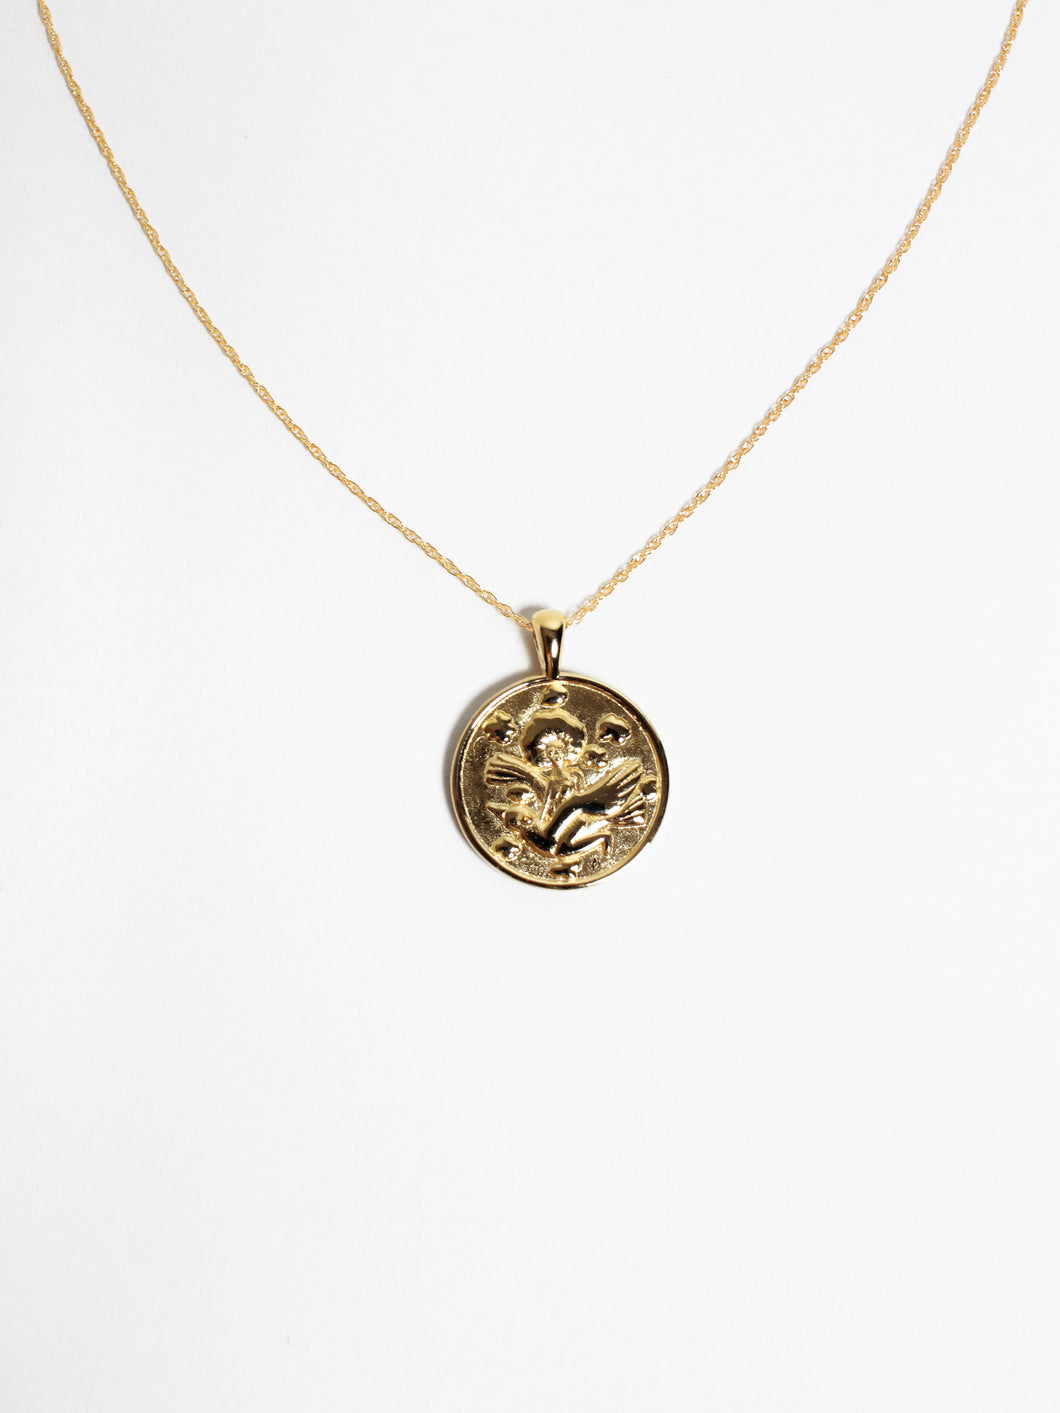 Anywhere Anywhere Medallion Necklace